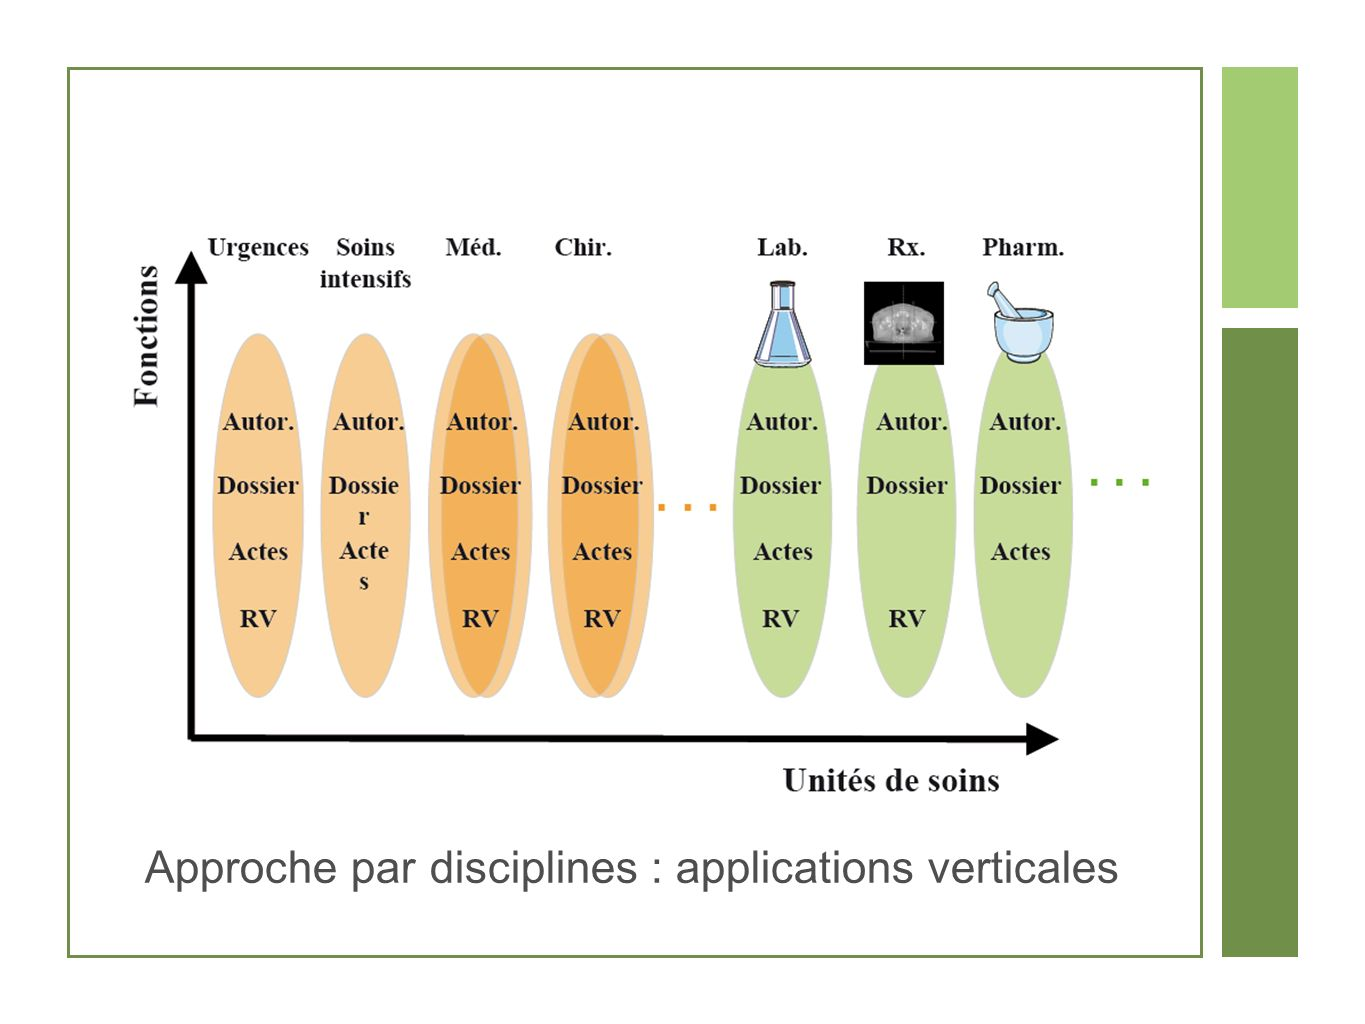 Approche par disciplines : applications verticales